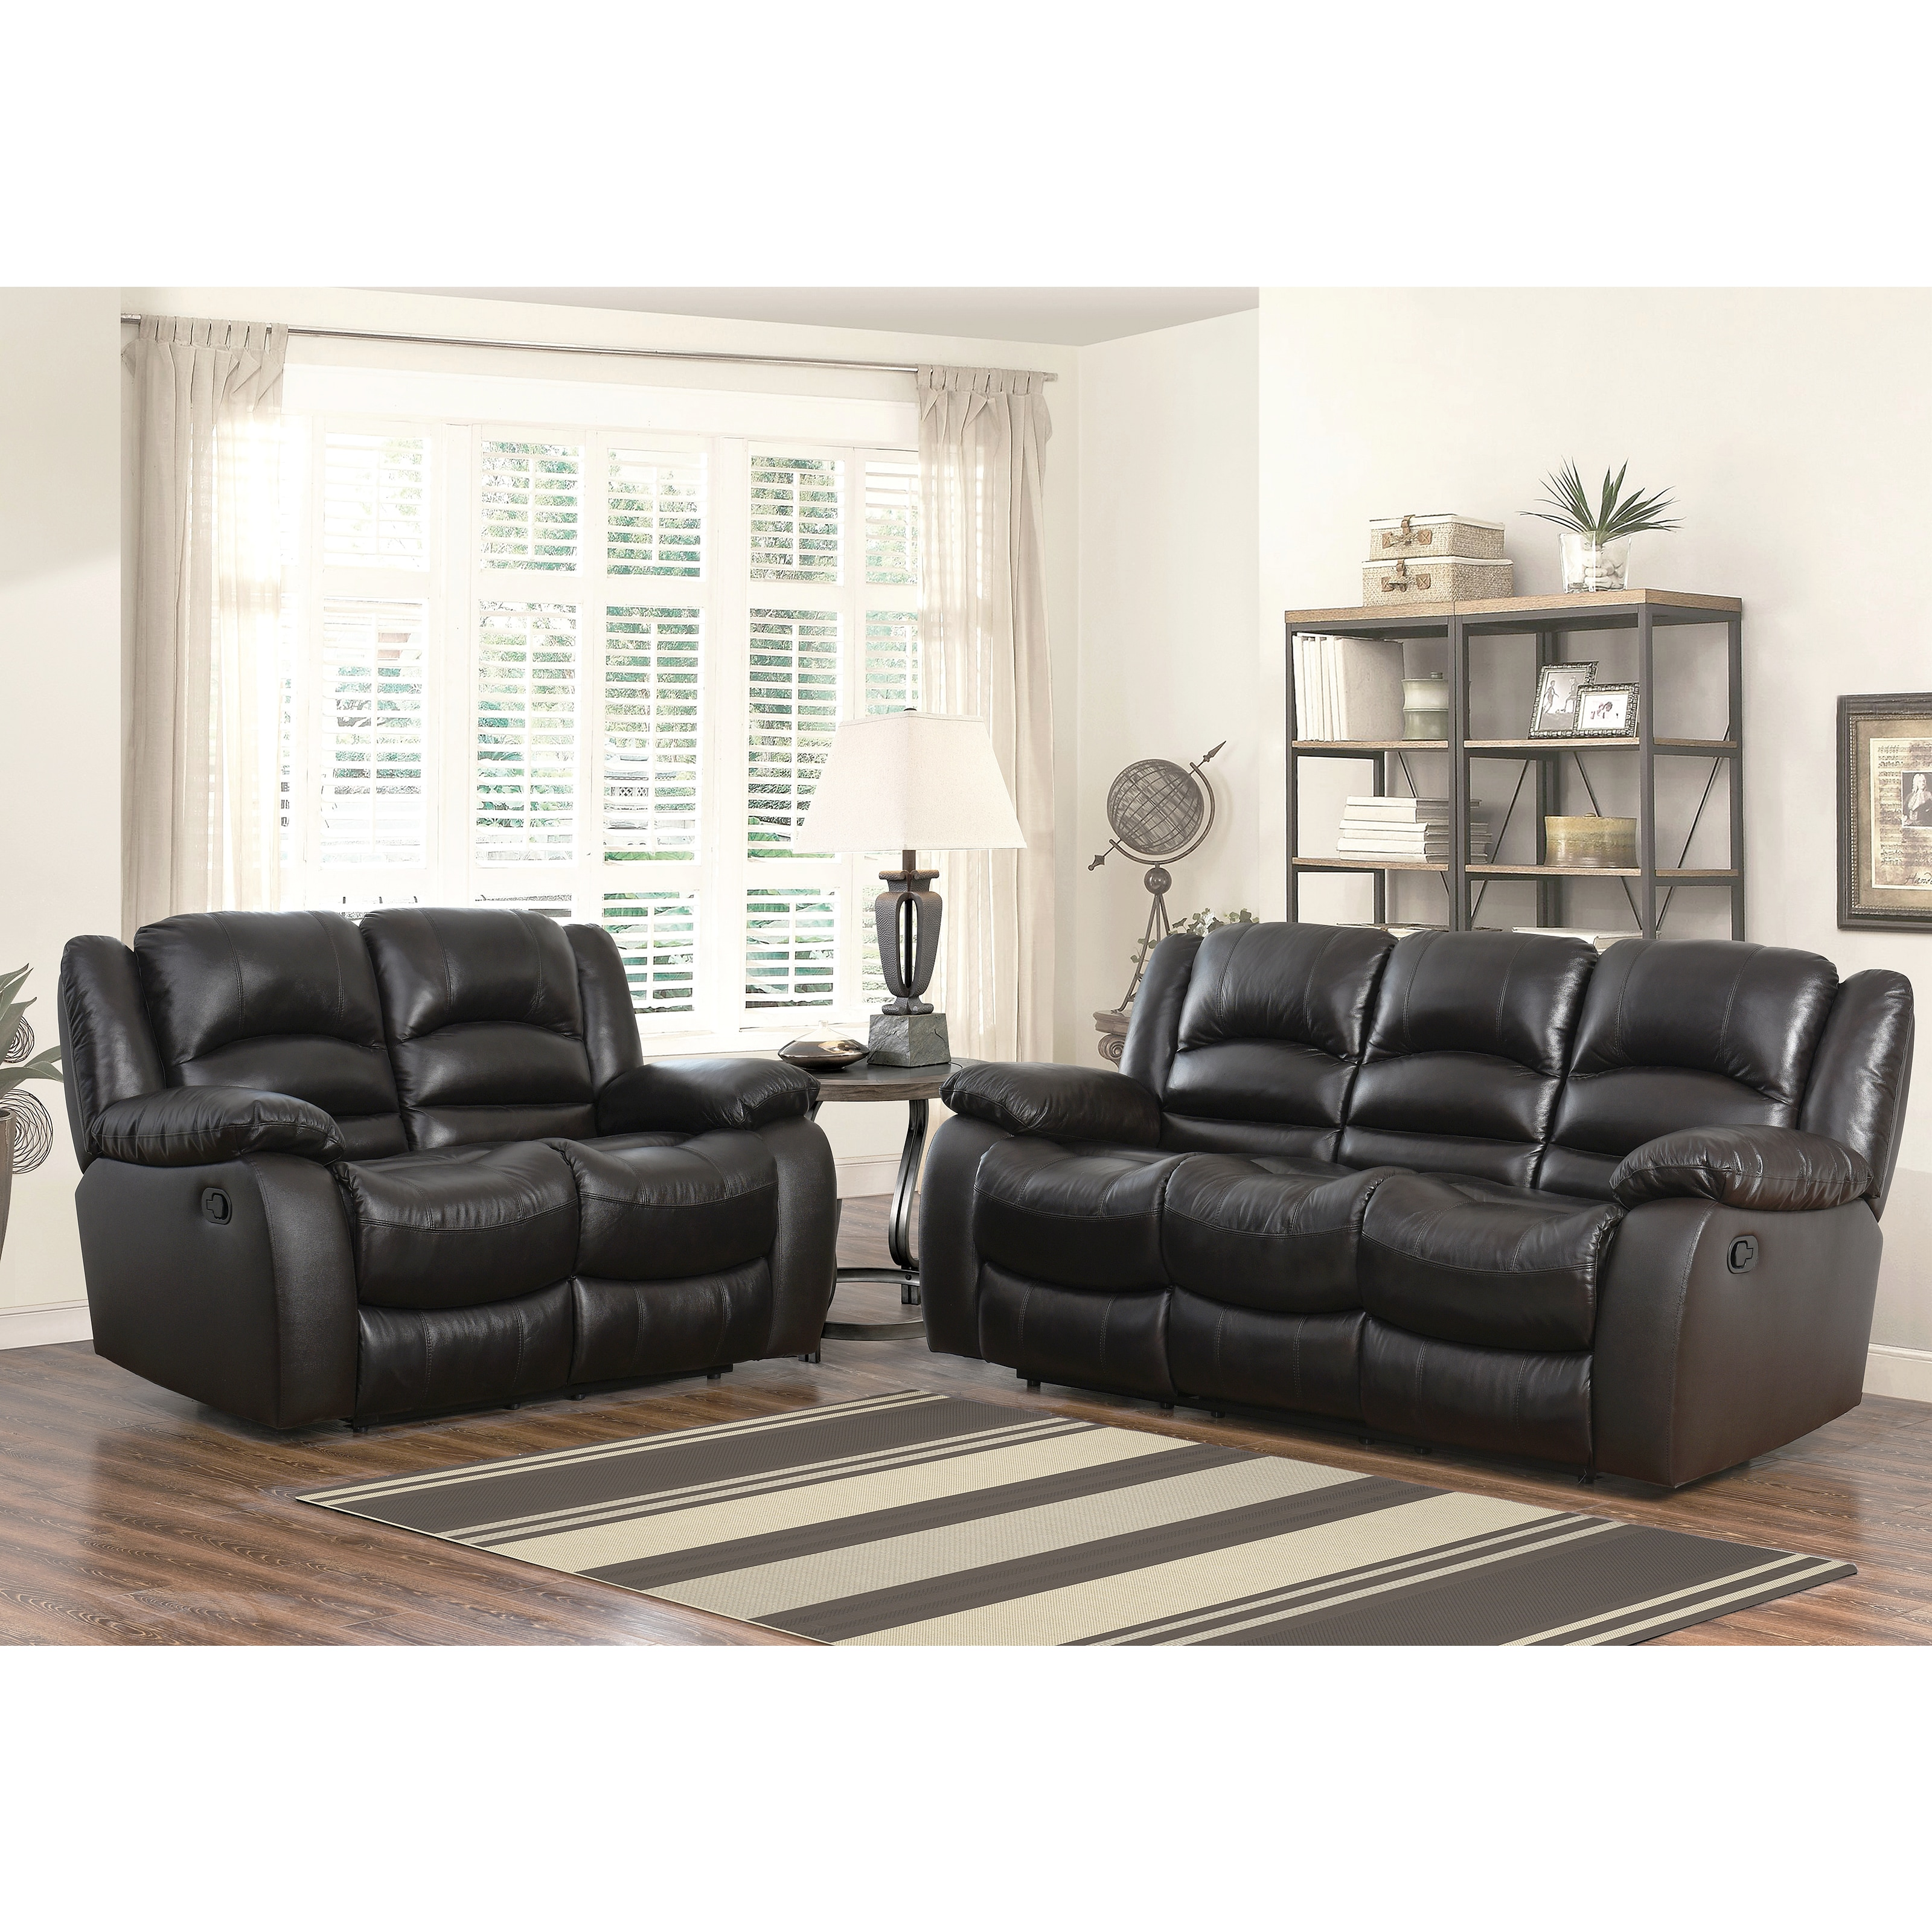 Abbyson Brownstone Top Grain Leather Reclining 2 Piece Living Room ...